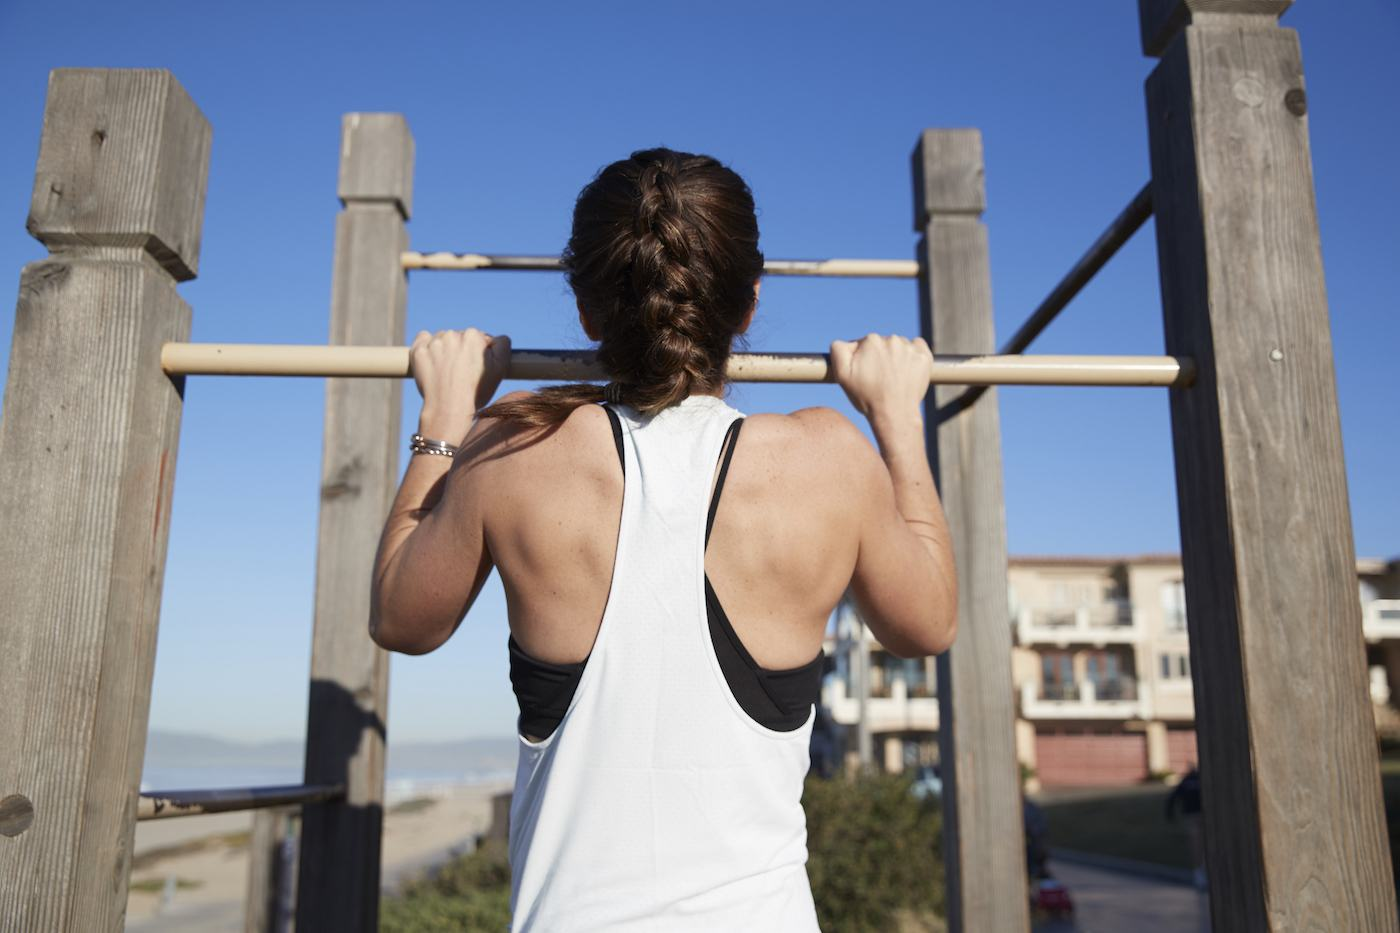 Negative pull-ups are part of the most positive workout | Well+Good